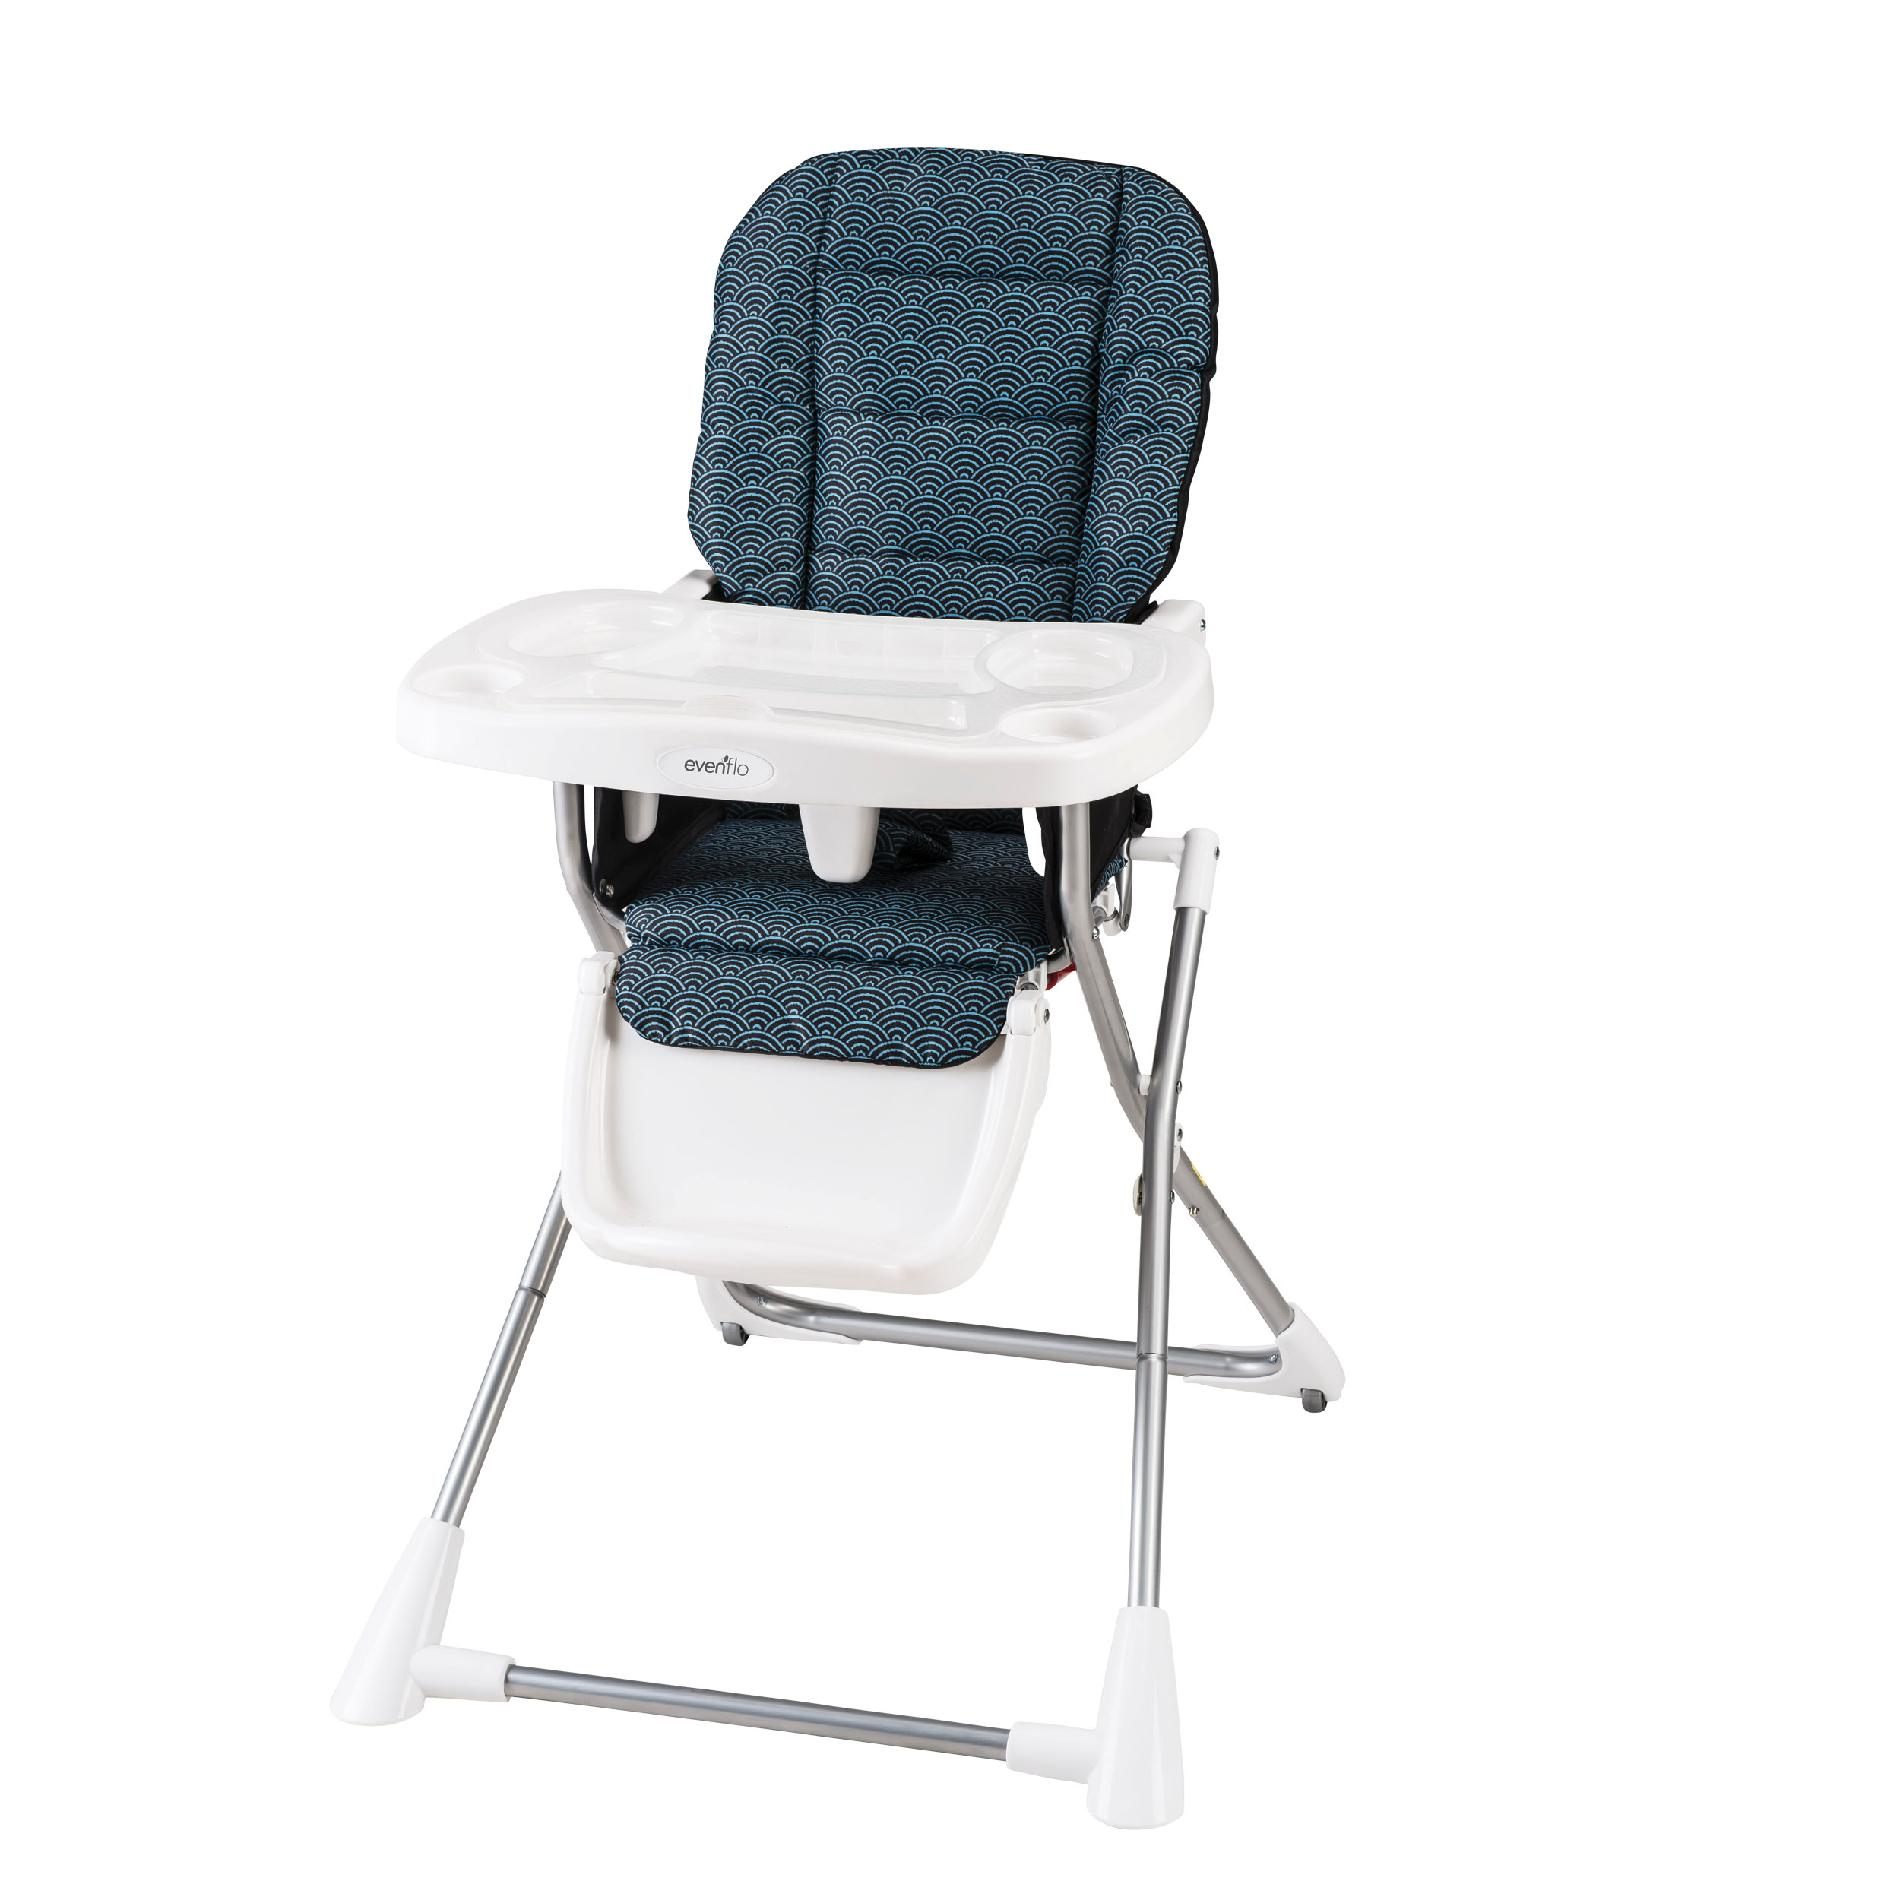 Evenflo Compact Fold High Chair Evenflo Compact Fold High Chair Koi Baby Baby Gear